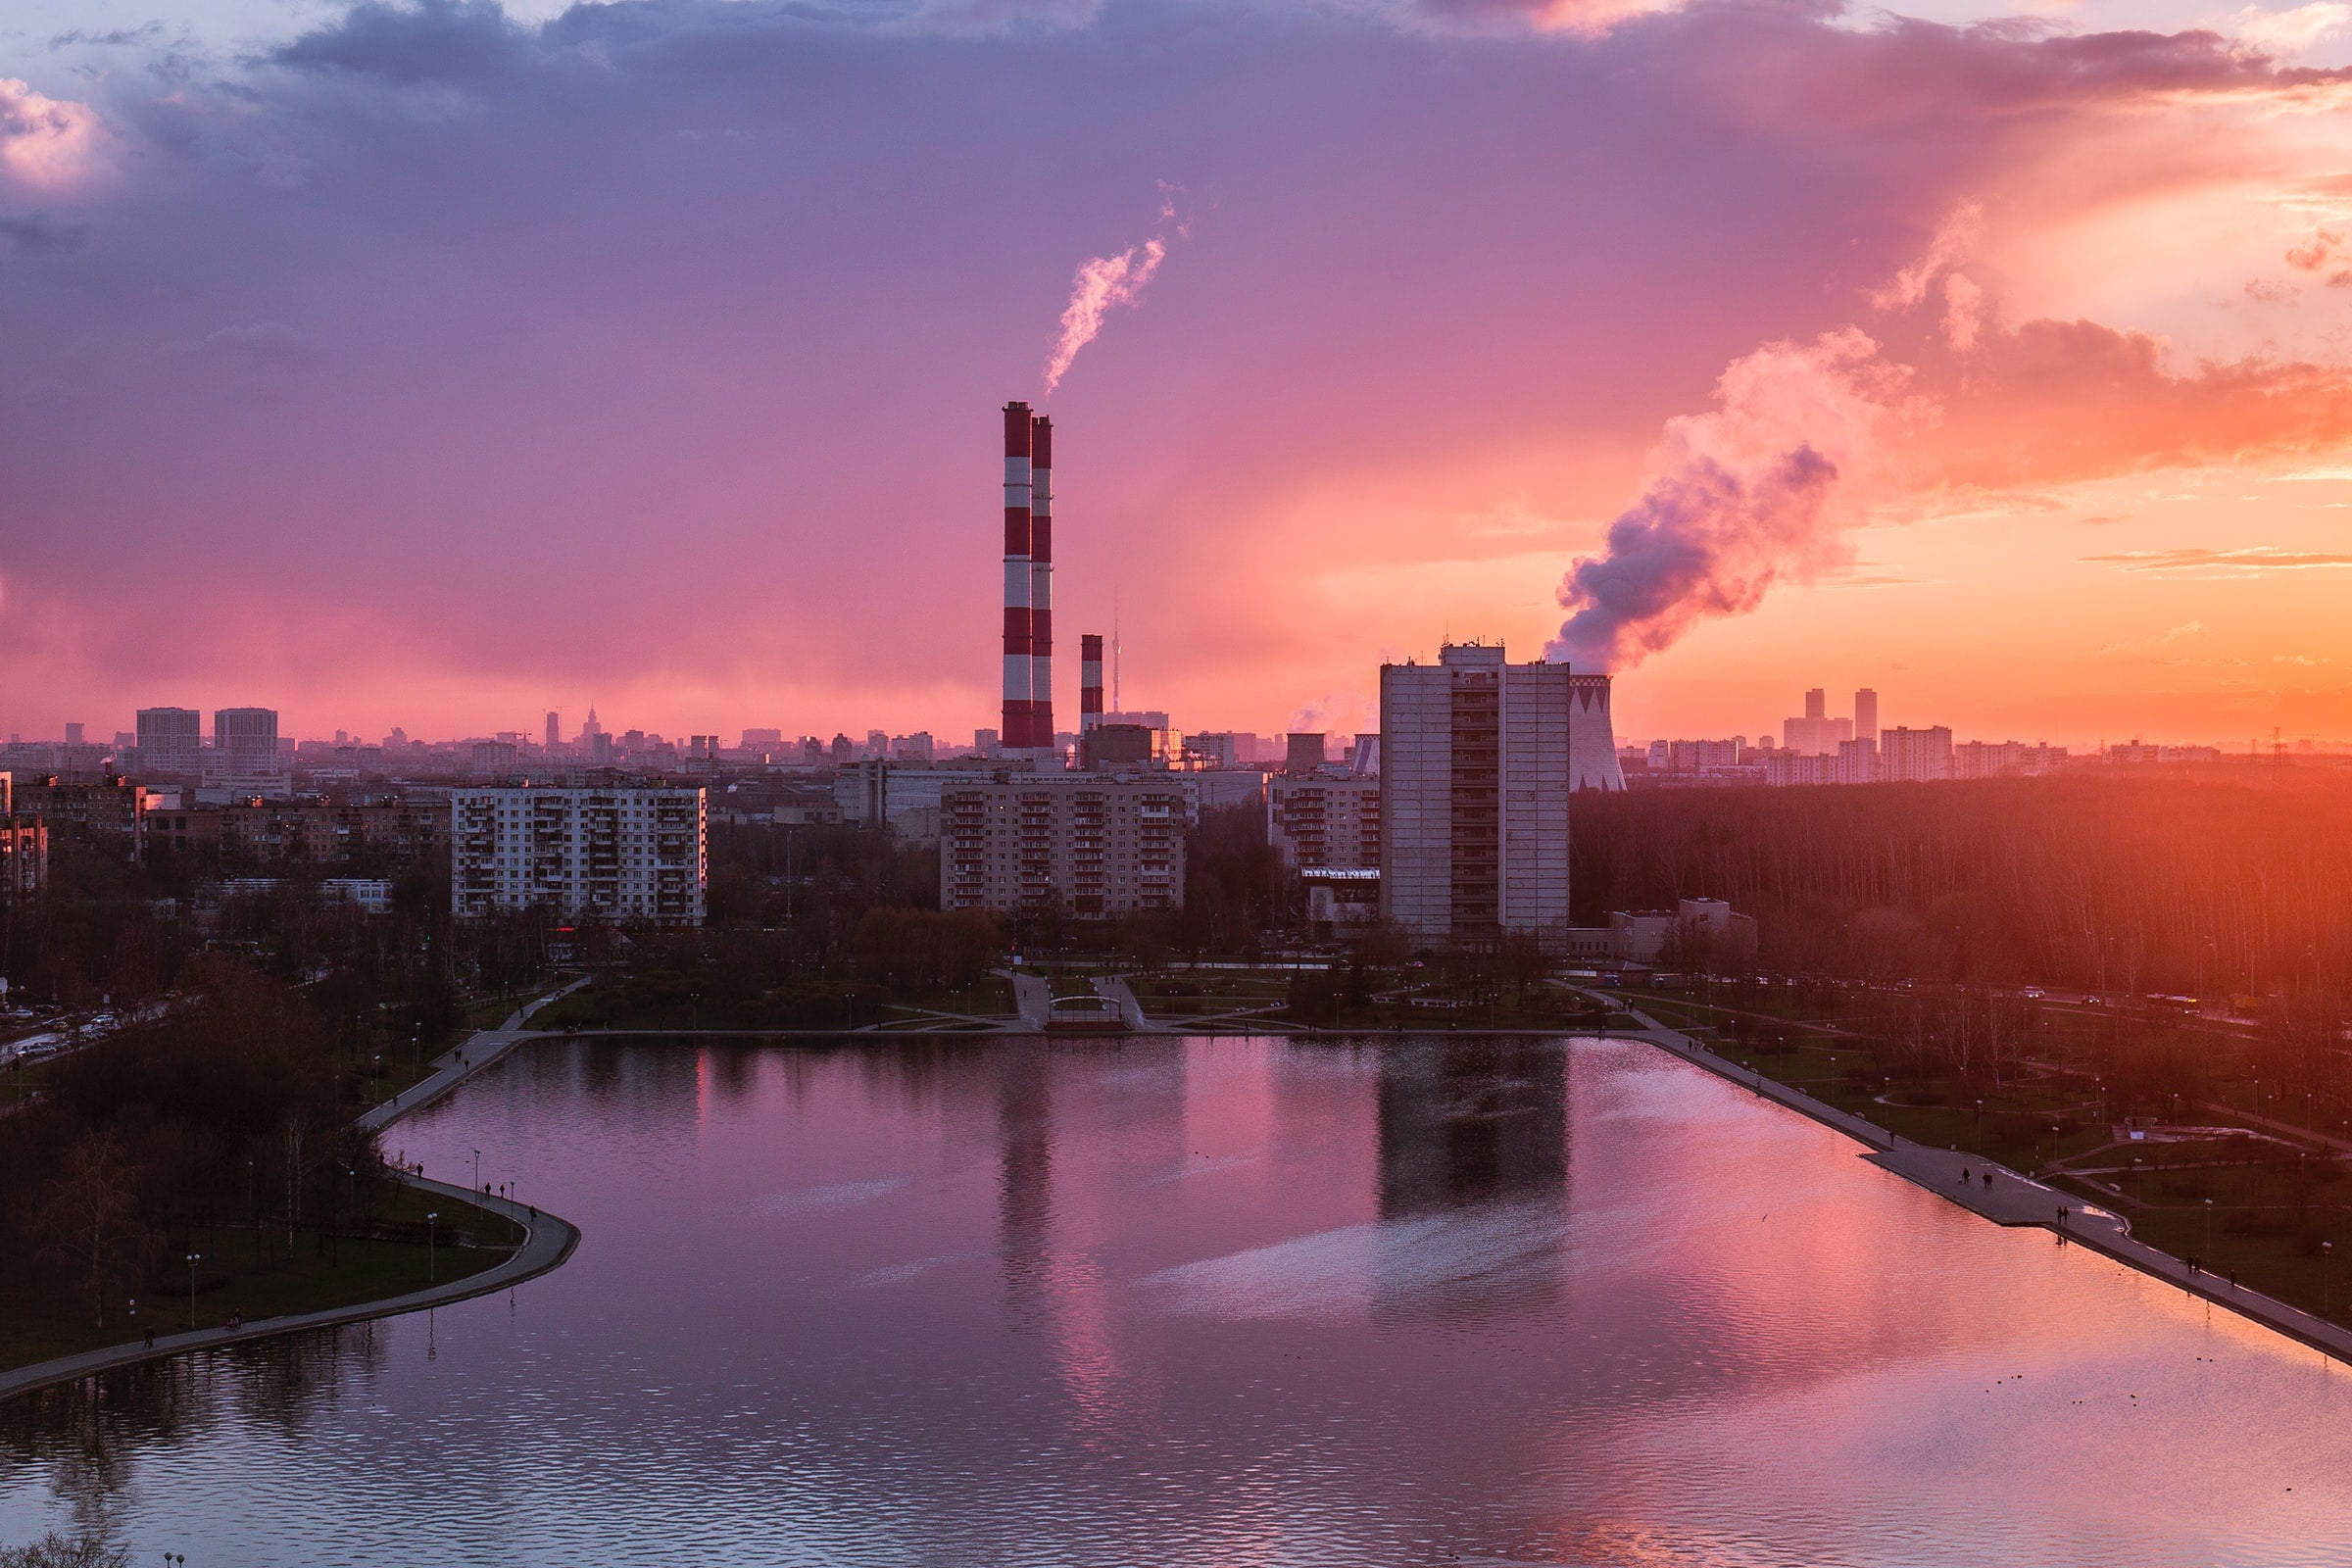 pollution can increase risk of toxin overload